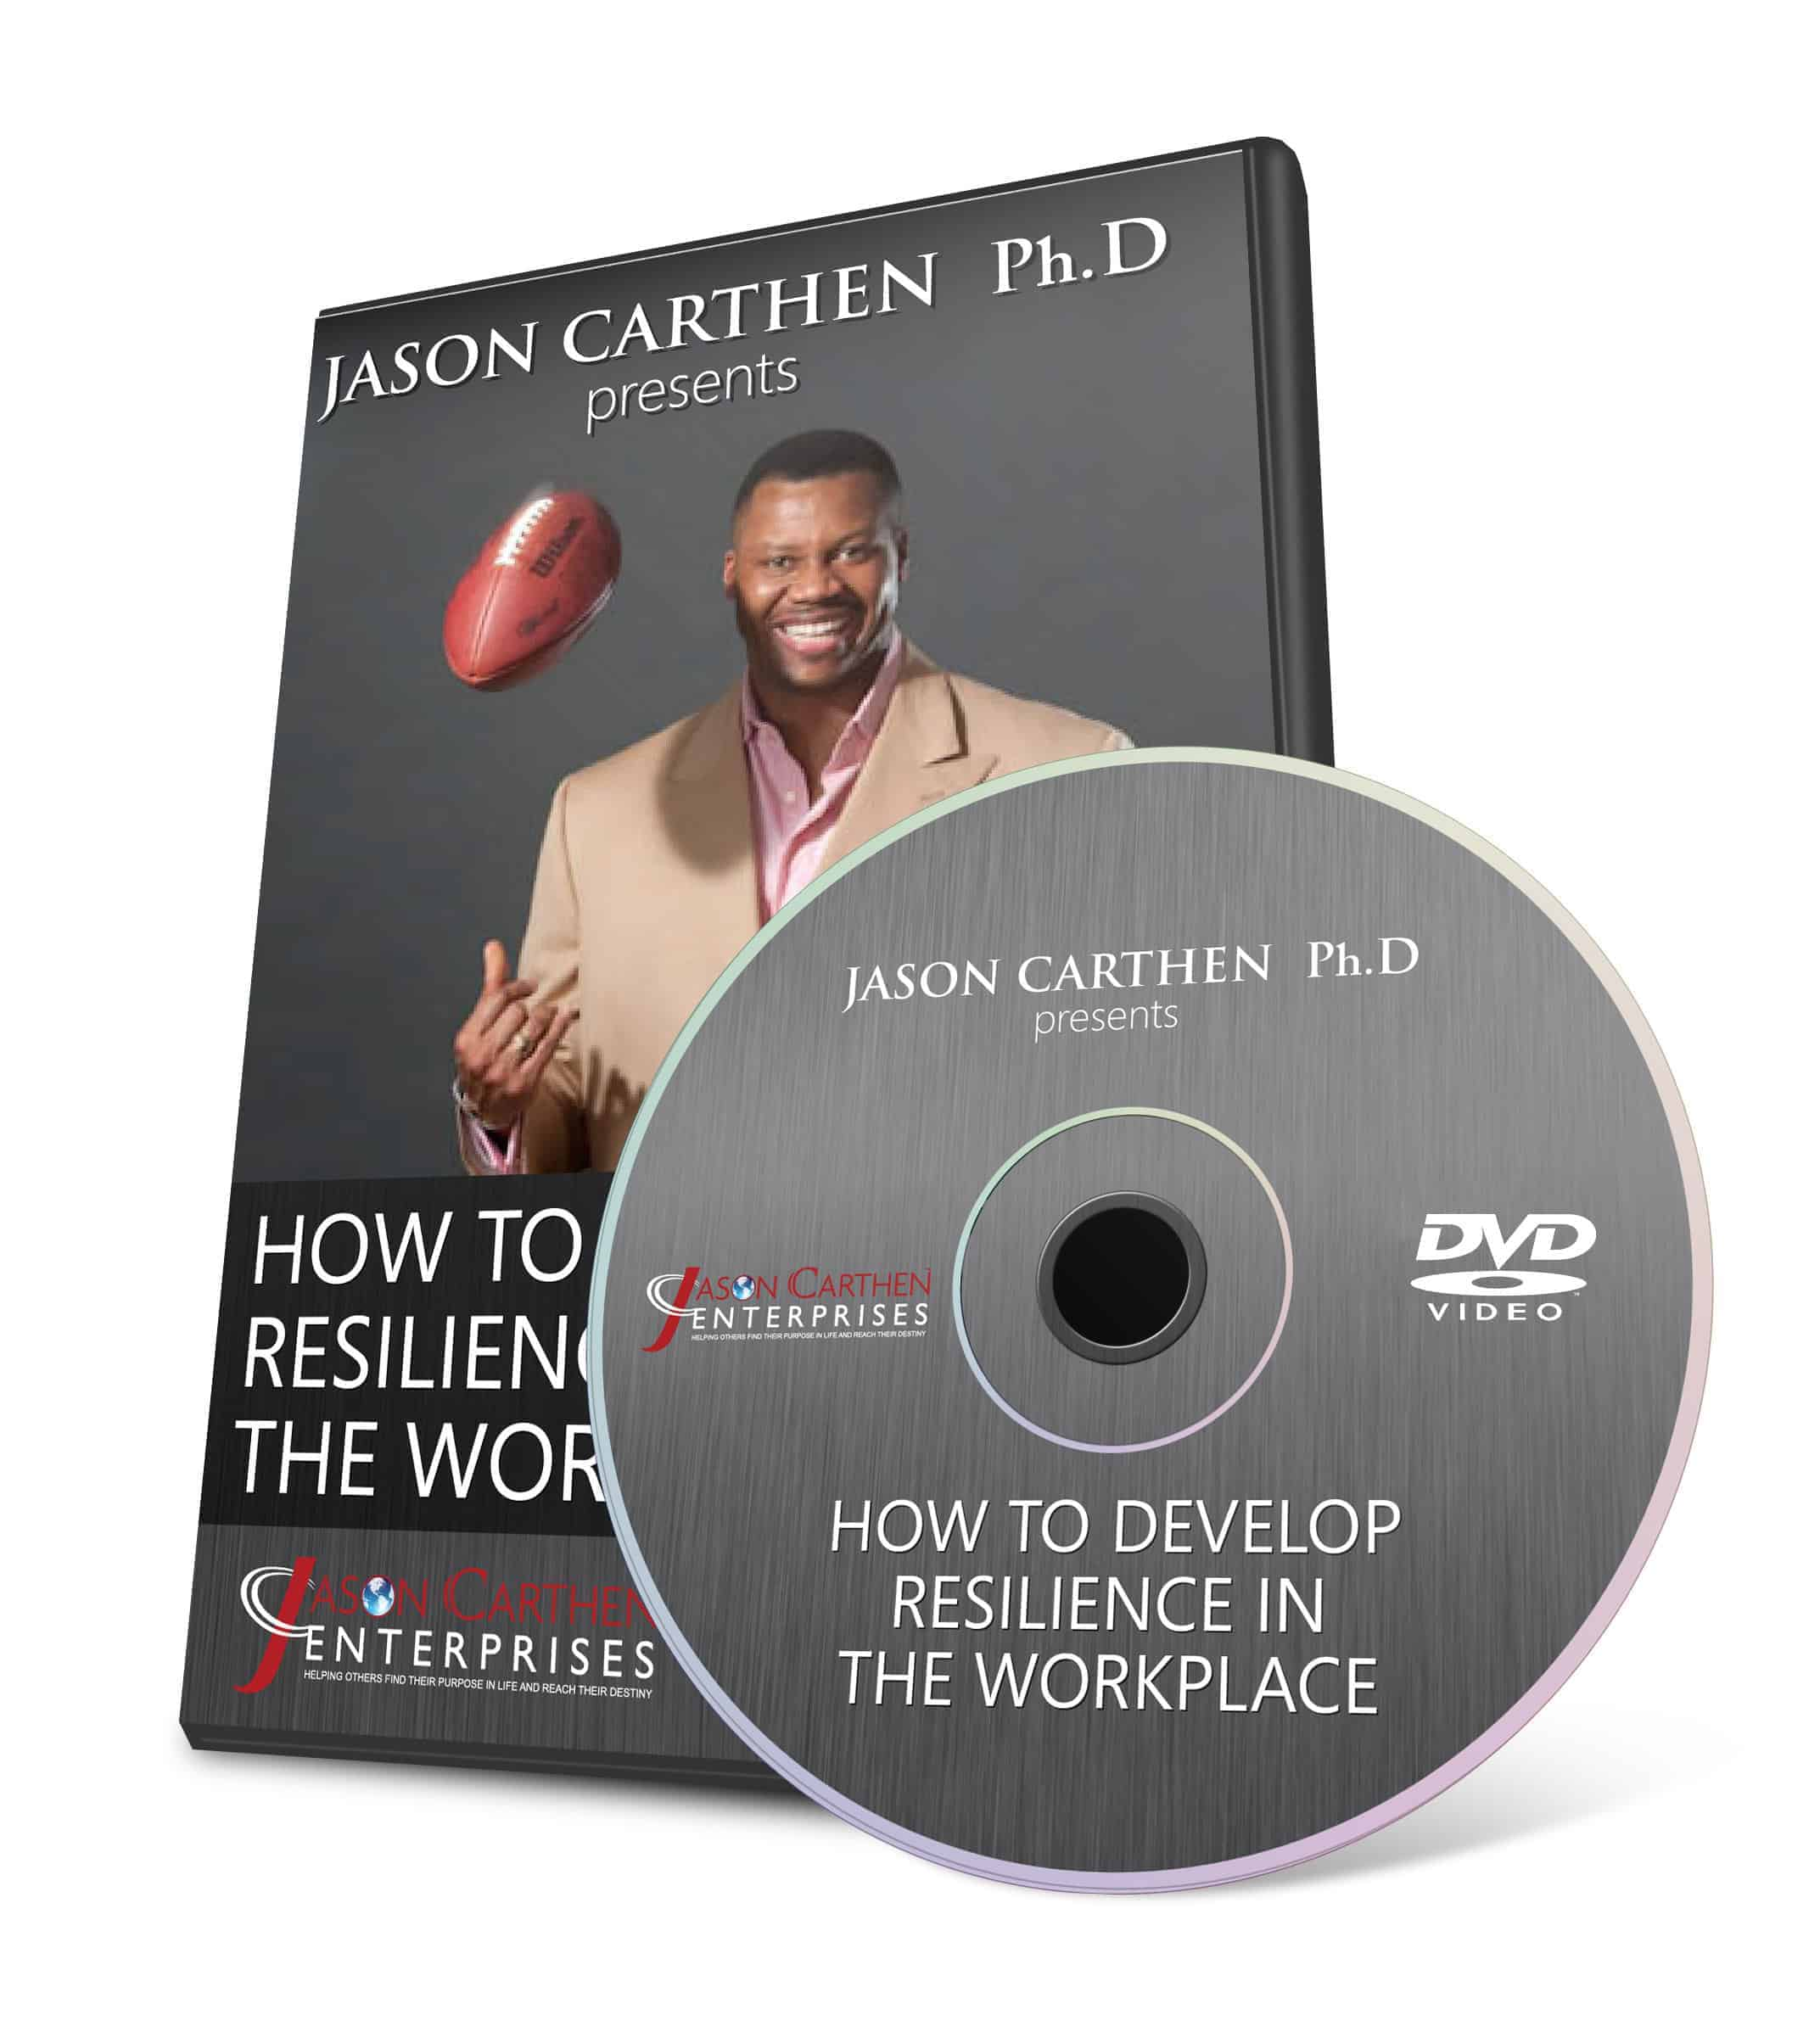 Dr. Jason Carthen: How to Develop Resilience in the Workplace DVD